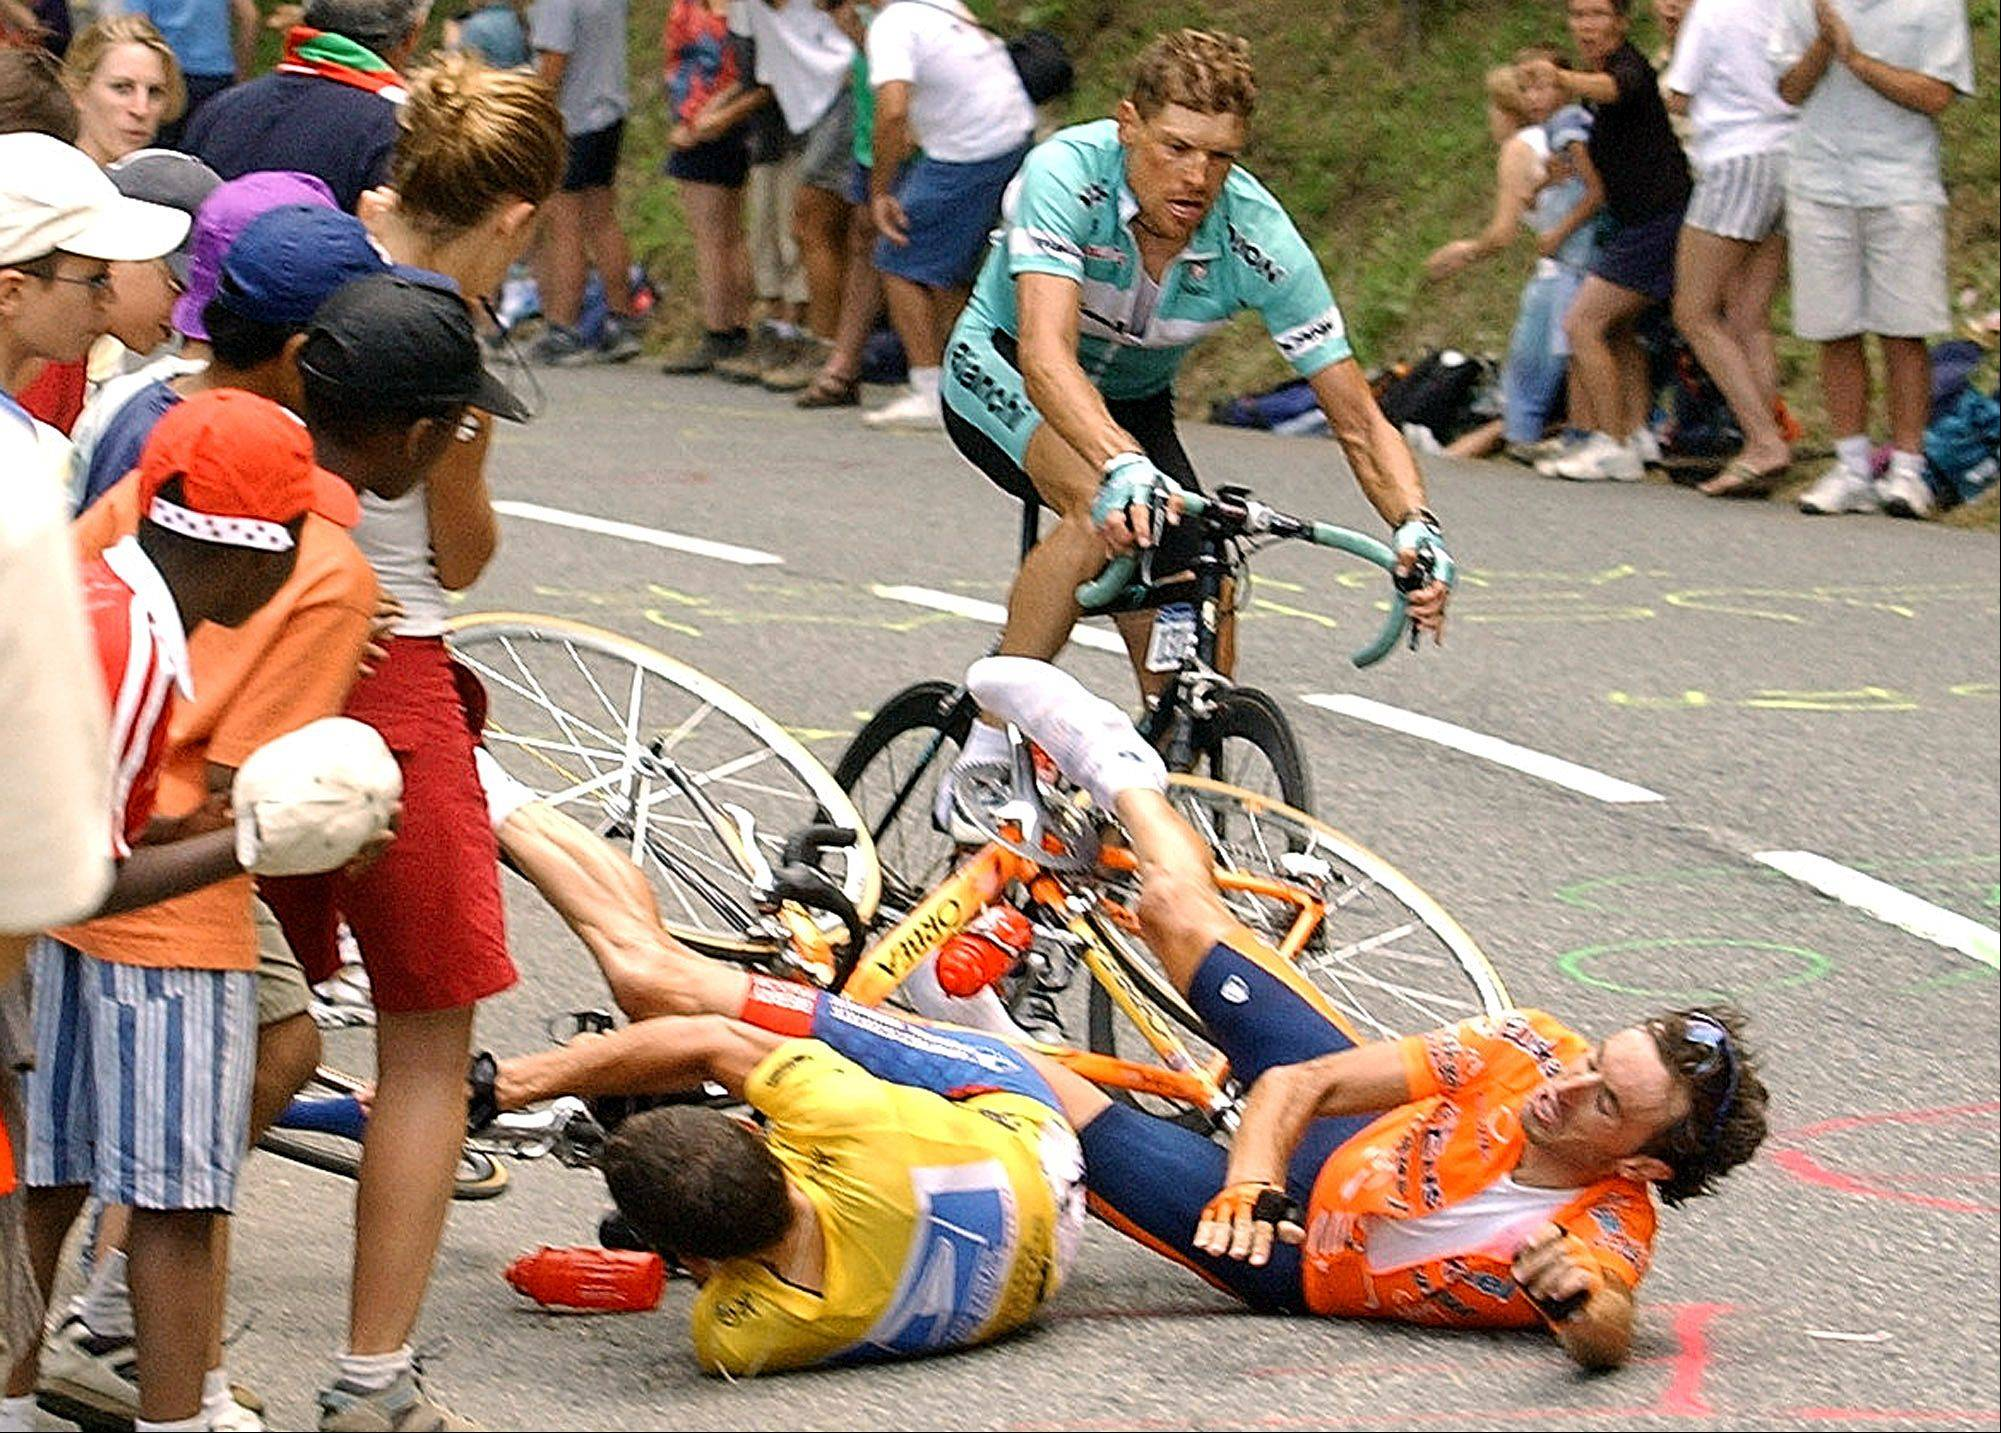 Jan Ullrich of Germany, background, evades Iban Mayo of Spain, right, and overall leader Lance Armstrong, of Austin, Texas, as Armstrong and Mayo fall in the final ascent towards Luz-Ardiden, during the 15th stage of the Tour de France cycling race between Bagneres-de-Bigorre and Luz-Ardiden, French Pyrenees, Monday, July 21, 2003. Armstrong famously got back up, charged ahead and won the stage, and Ullrich finished in third place.